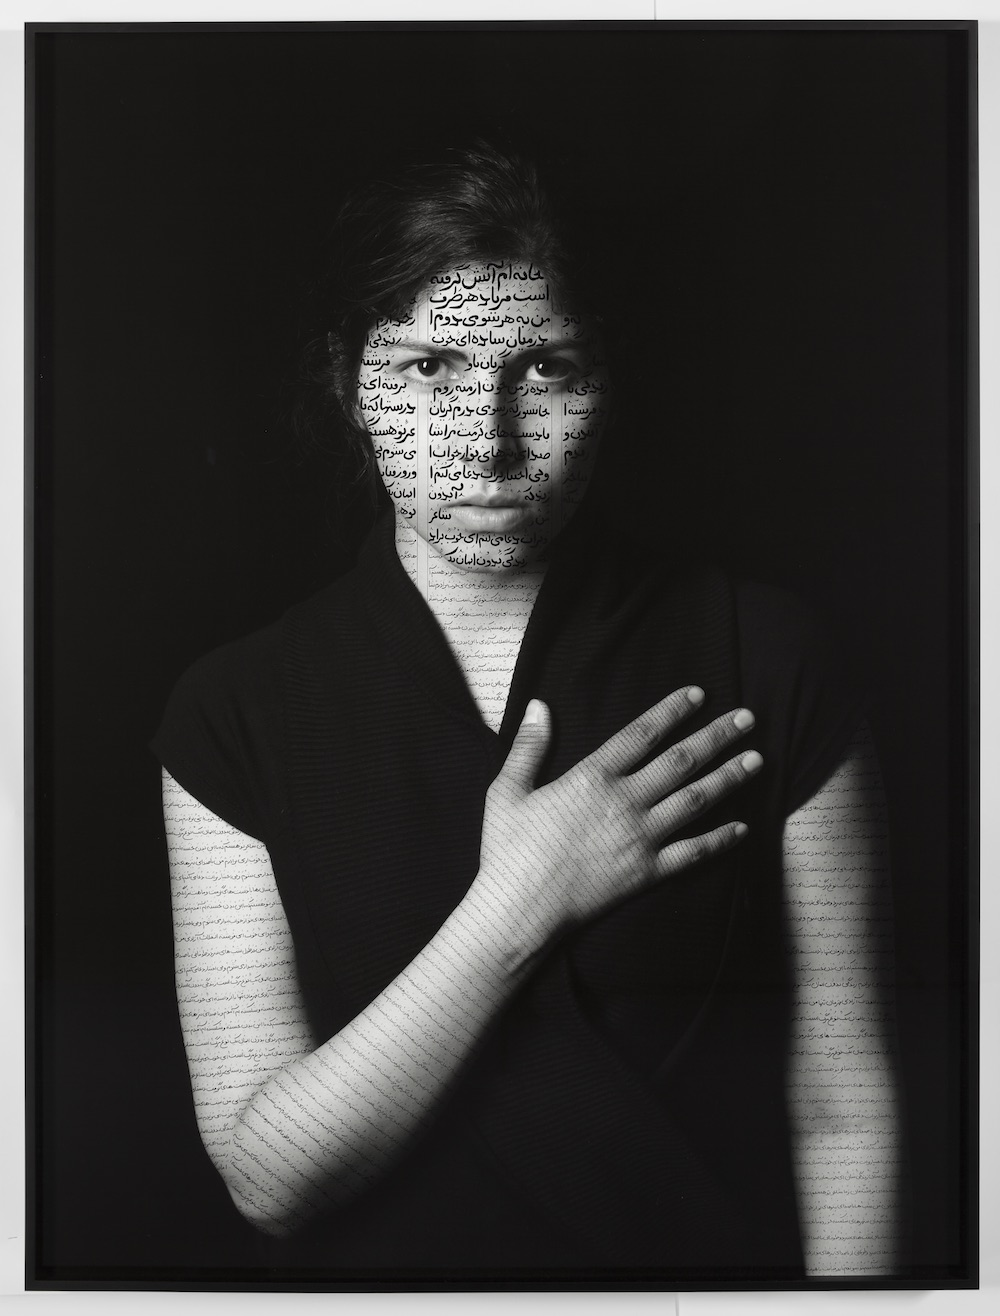 Black-and-white photograph of a woman with light skin and dark hair wearing a black t-shirt that blends into the dark black background. She holds her right hand over her heart and stares out at the viewer. Her face and arms are inscribed with calligraphic verses in Farsi.